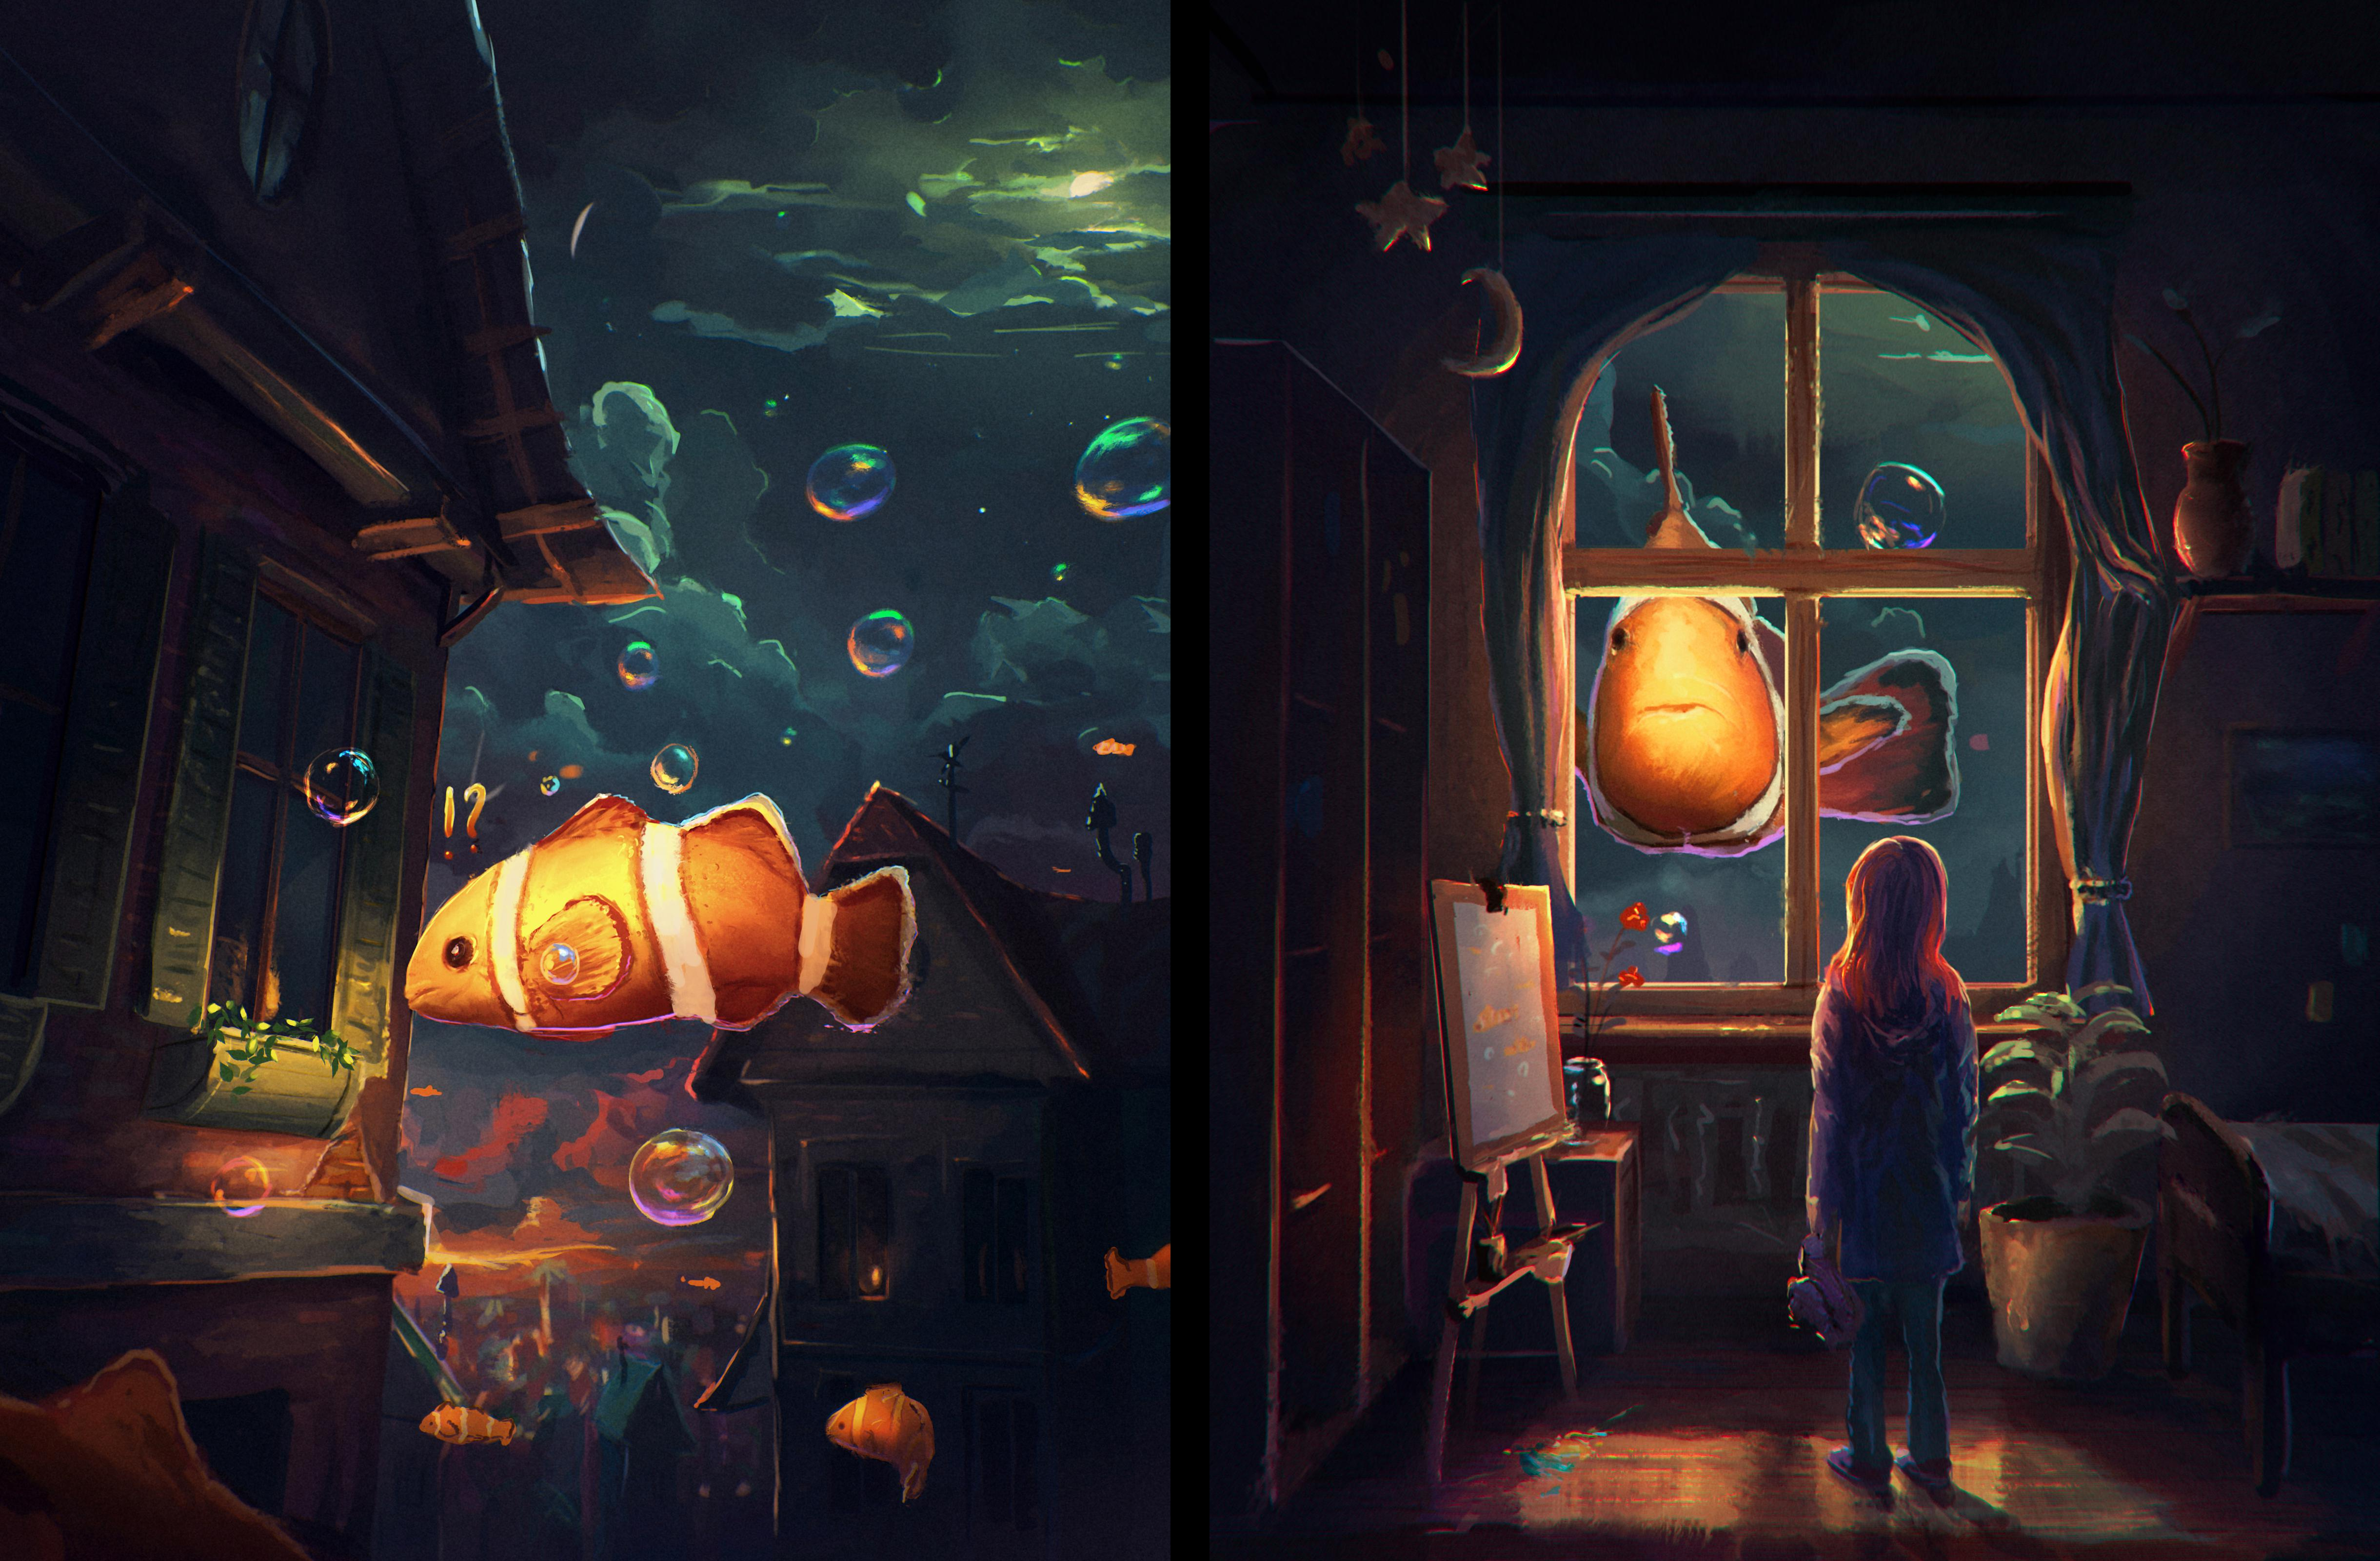 the-fish-in-the-window-by-sylar113-w0w7mh0rnd.jpg